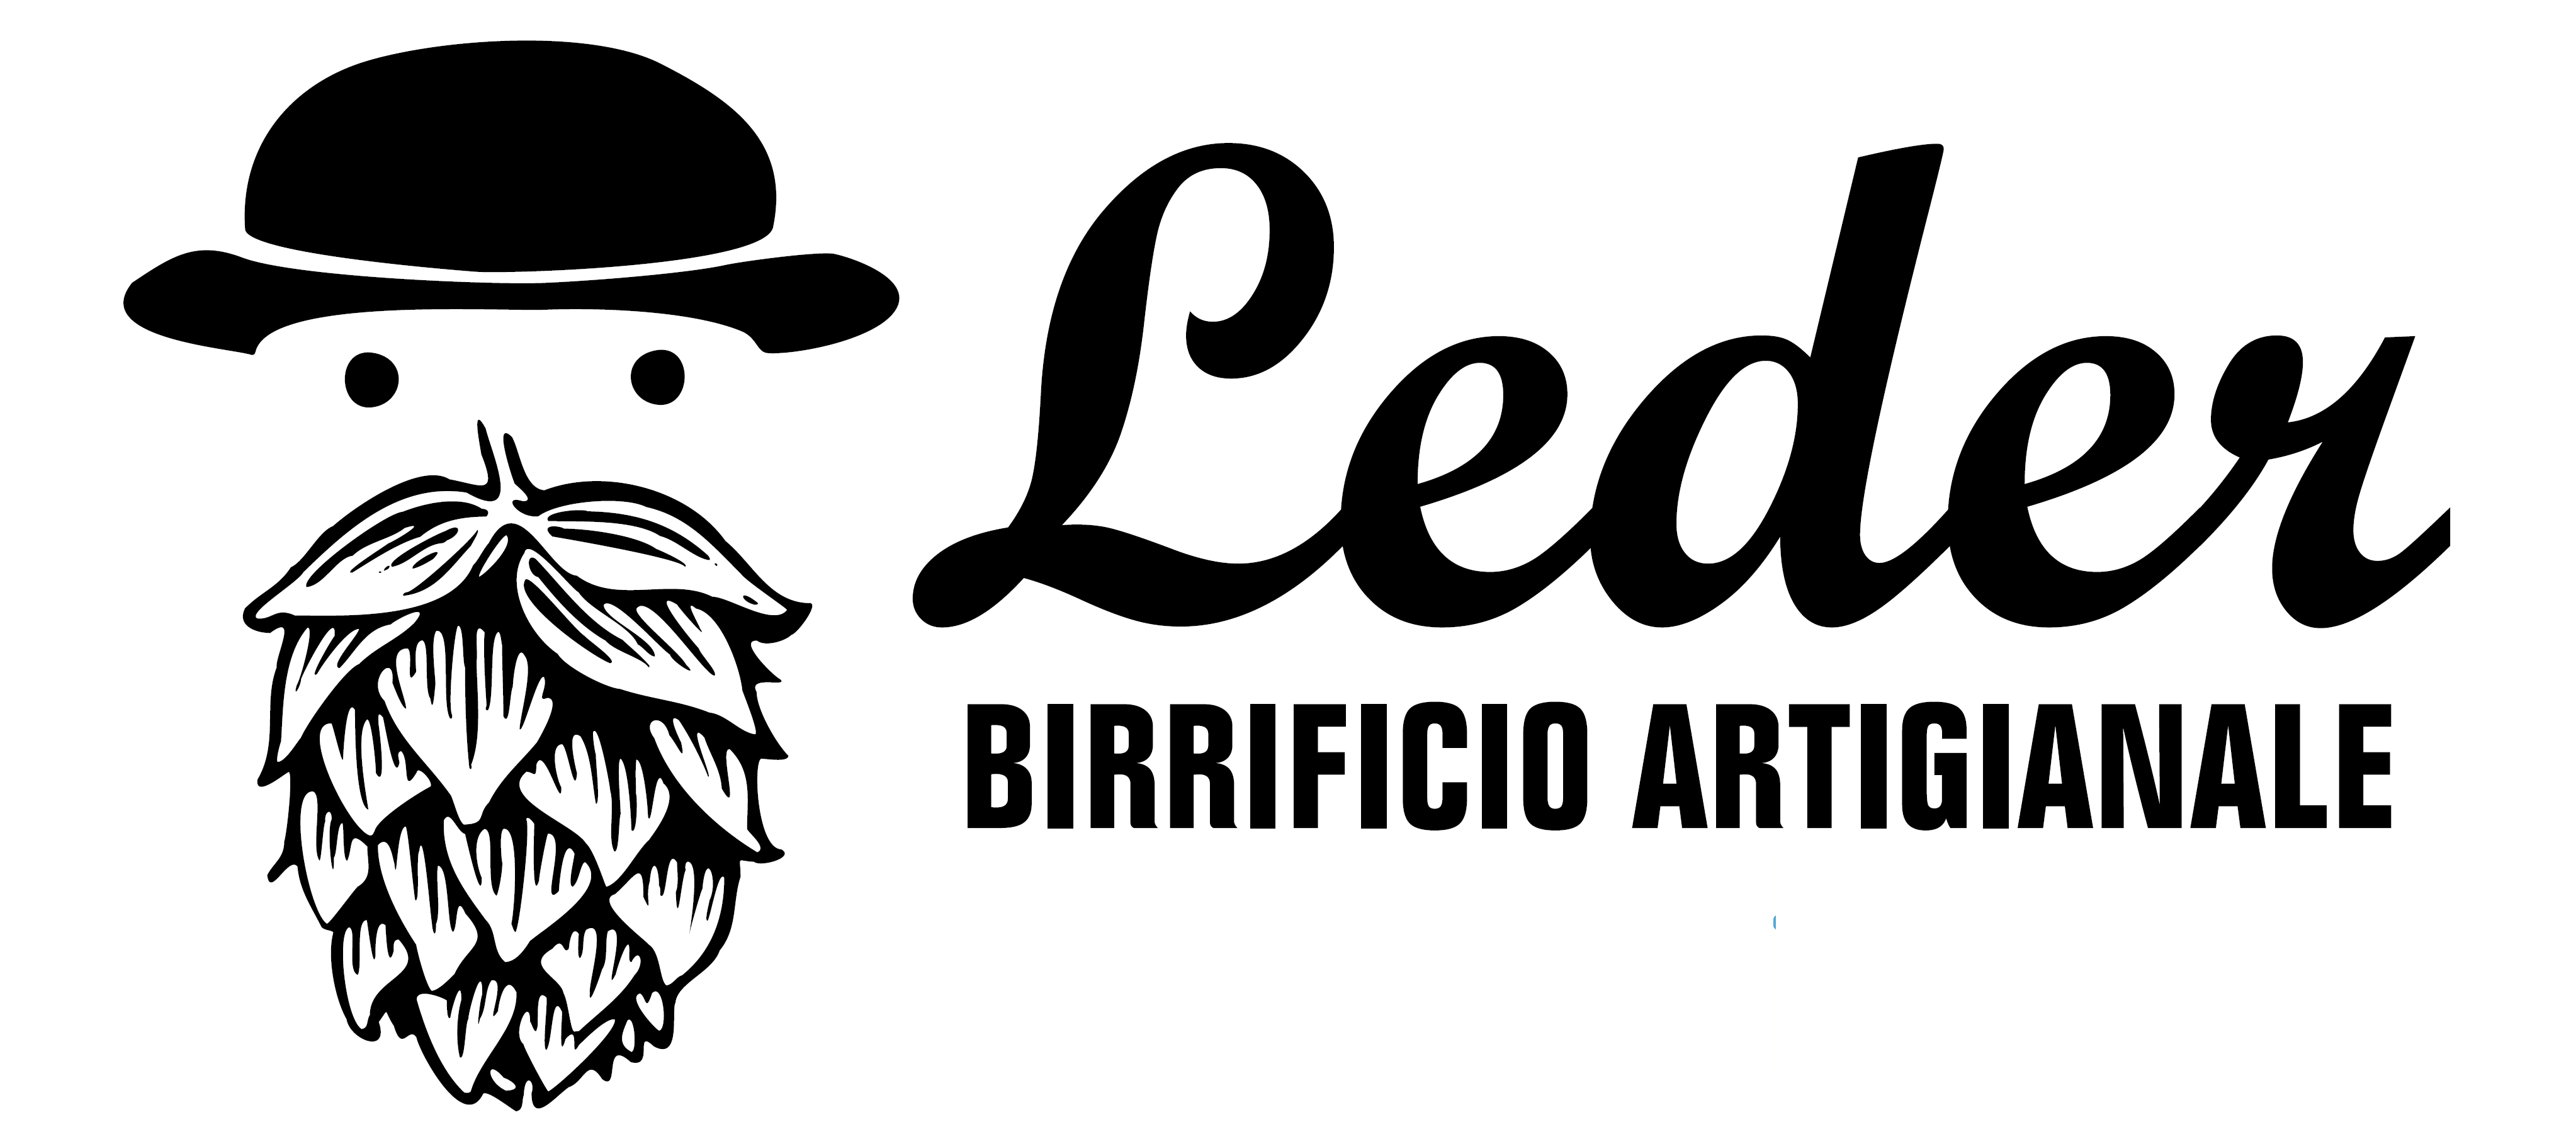 Birrificio Leder